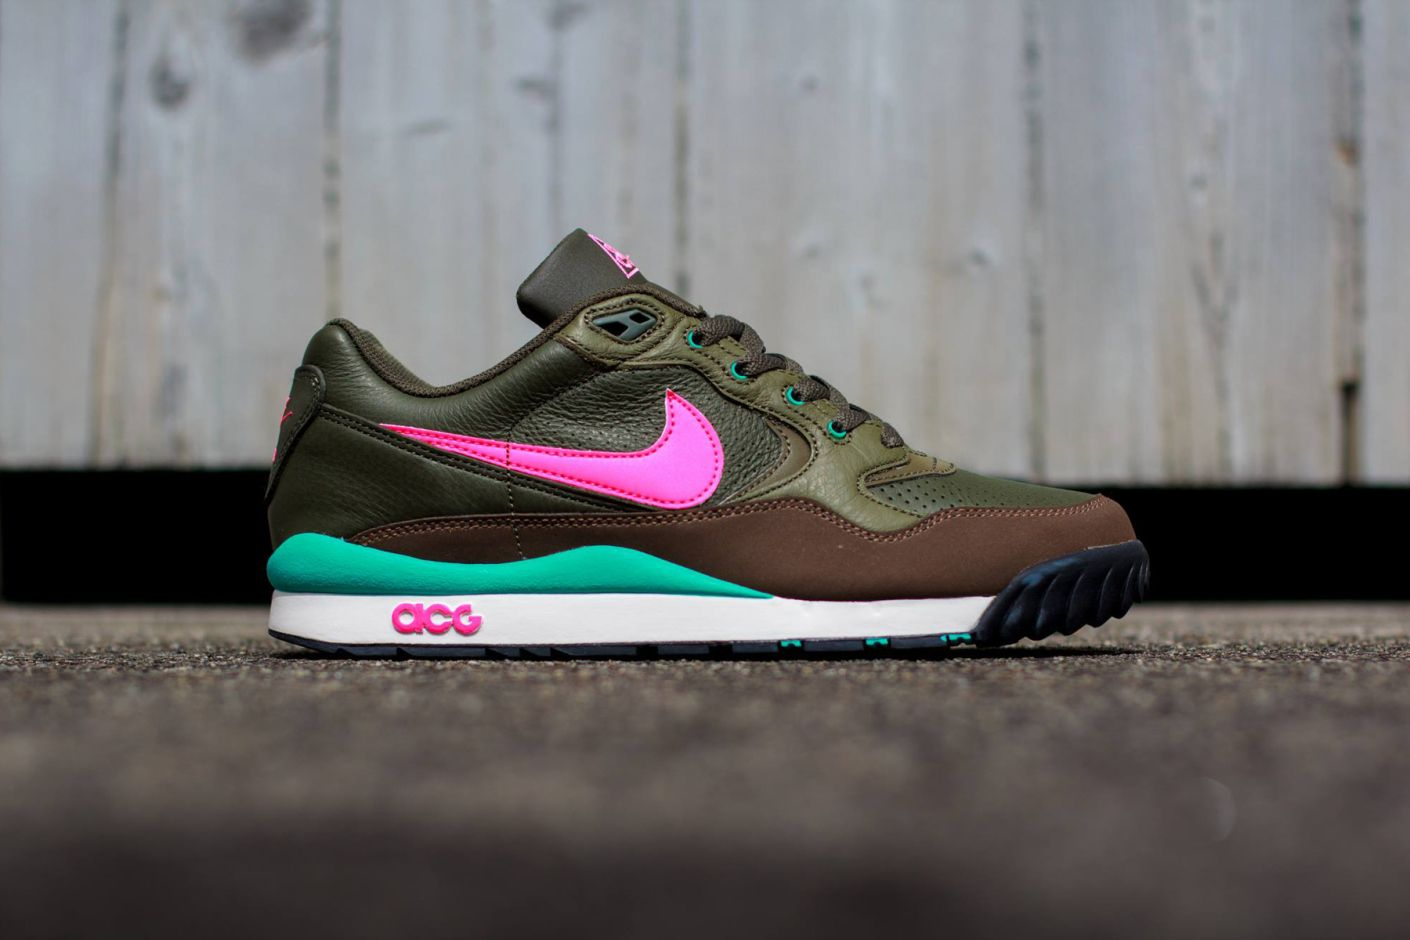 new style 527c3 2003f Image of Nike Air Wildwood LE KhakiPink-Olive